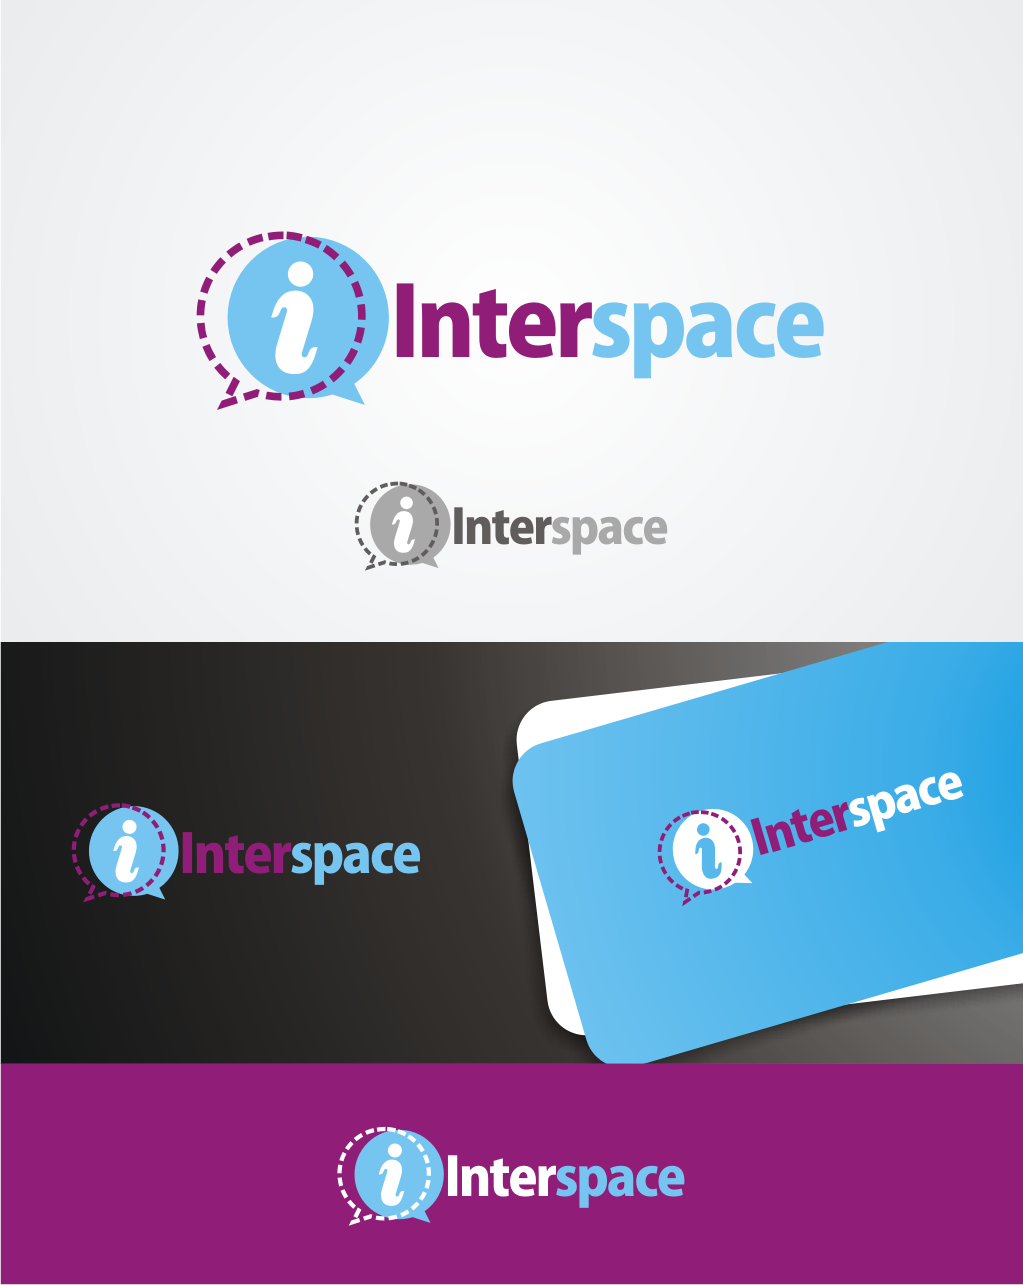 Help Interspace with a new logo